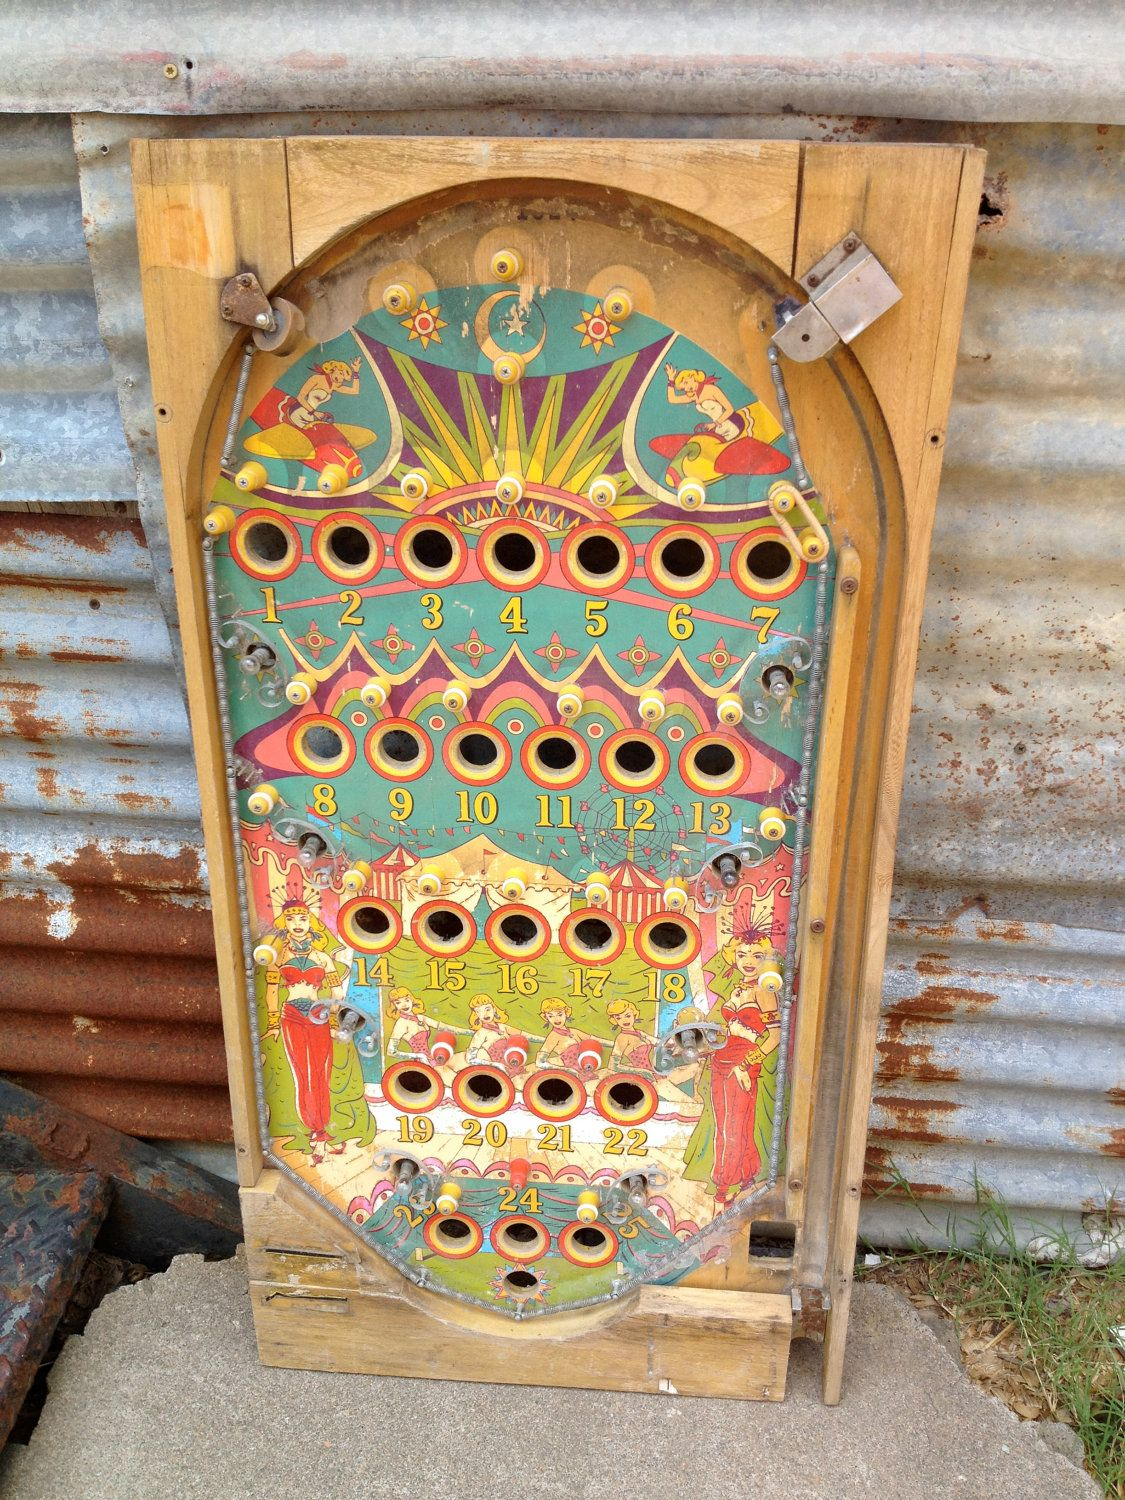 When I Found This Vintage Wooden Pinball Casing I Was